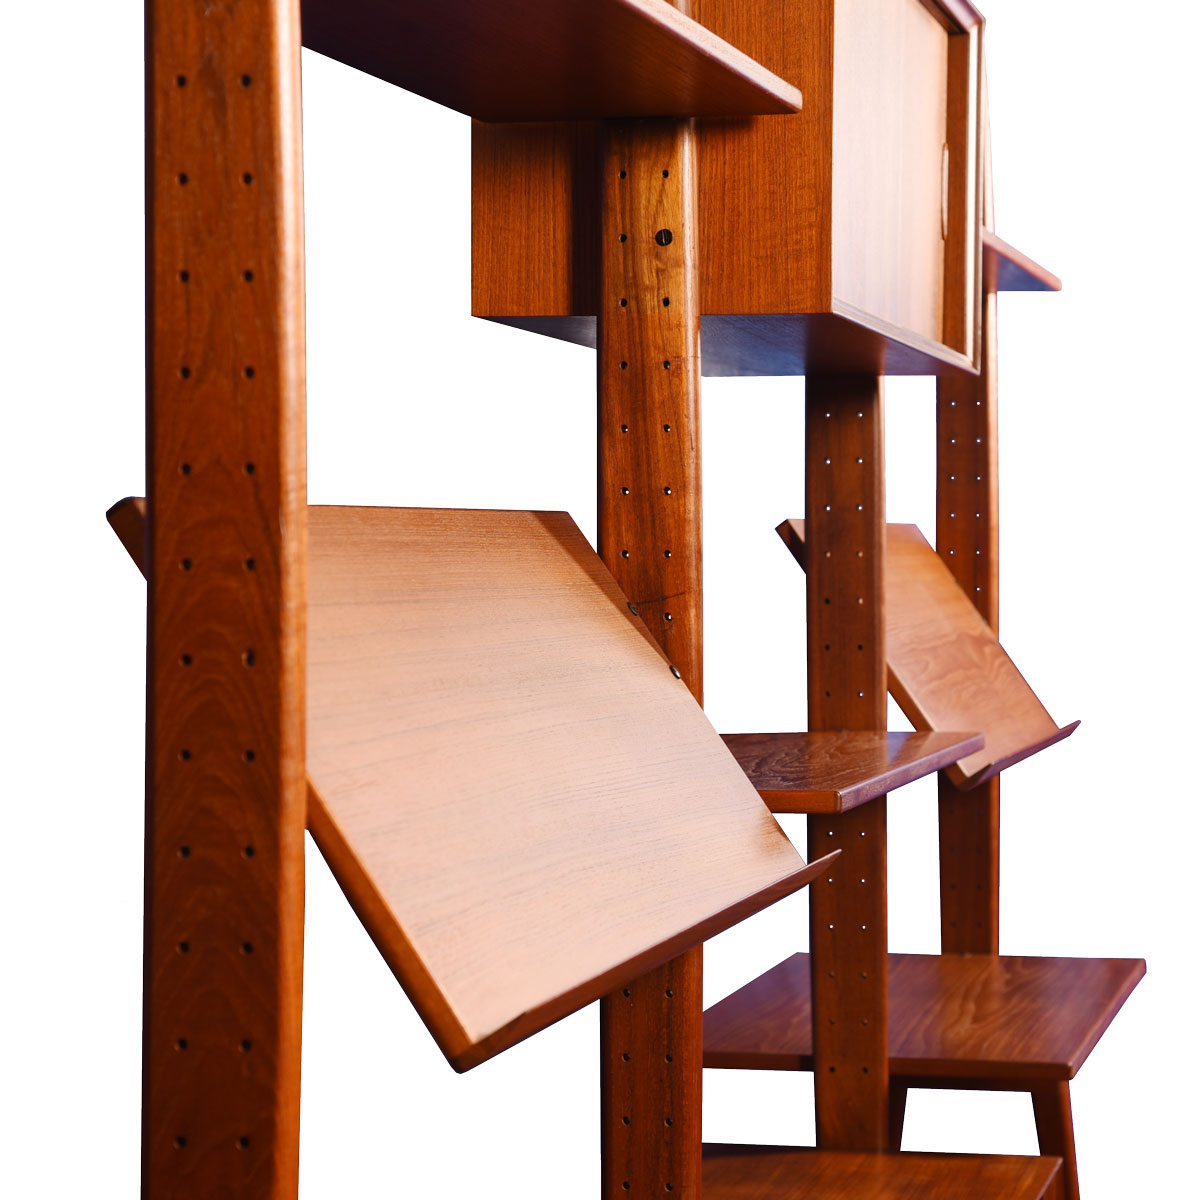 Erik Buch Rare Free-Standing Adjustable Room Divider / Wall Unit in Teak